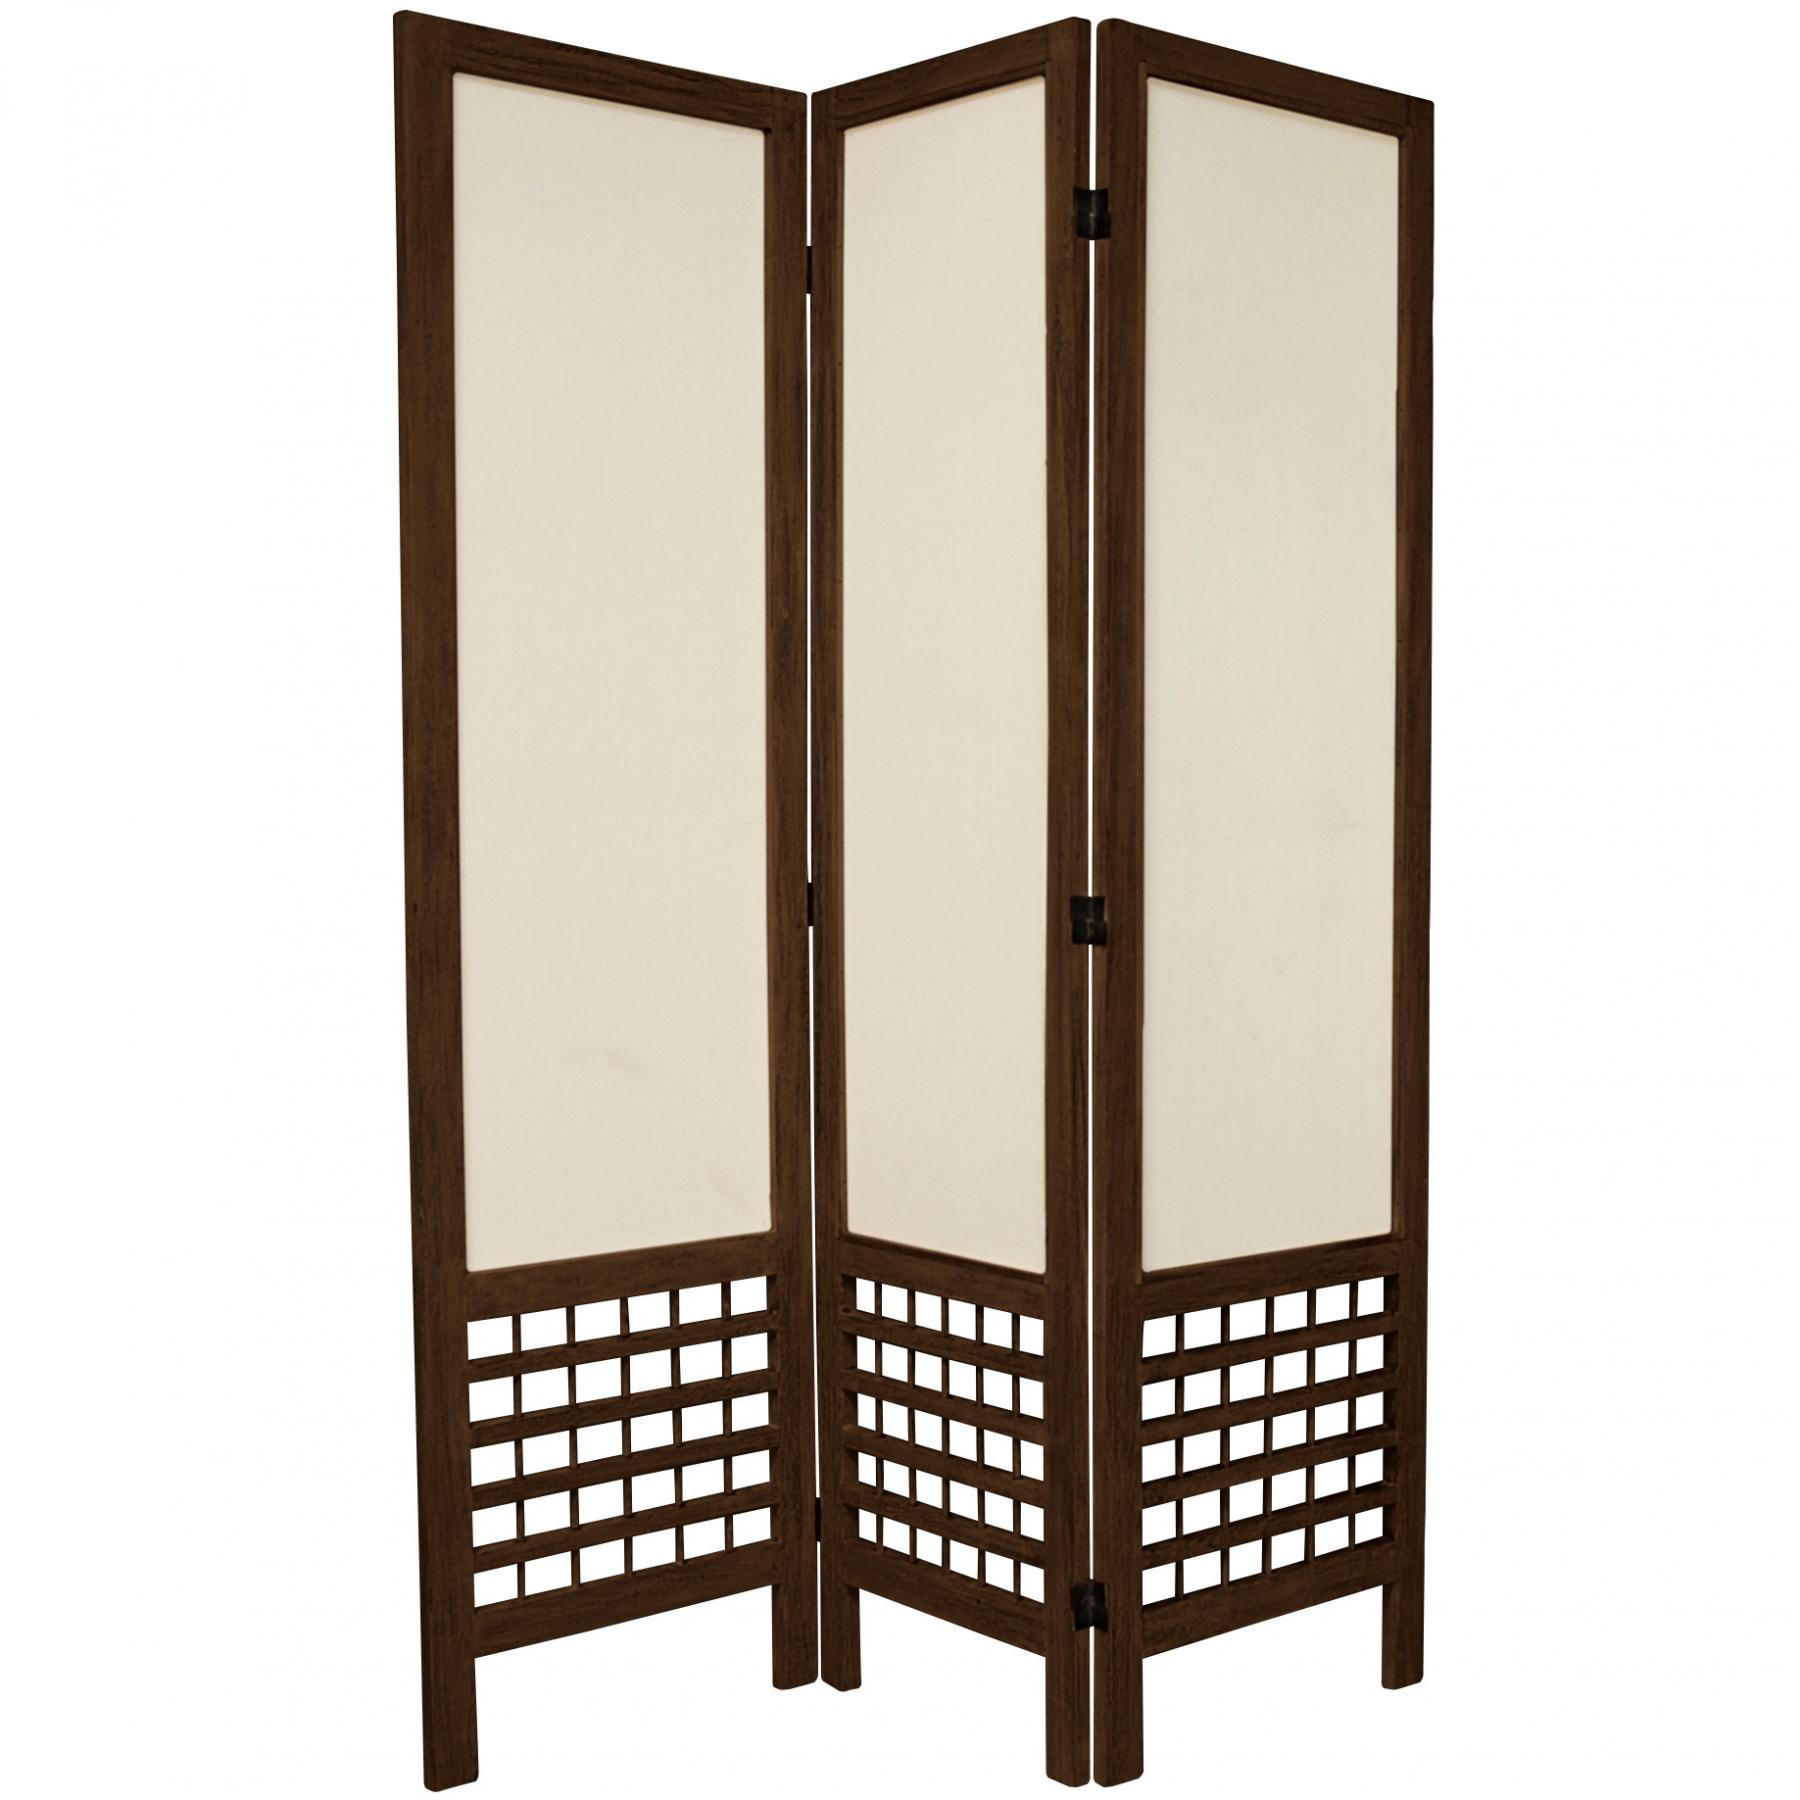 5 ft tall open lattice fabric room divider